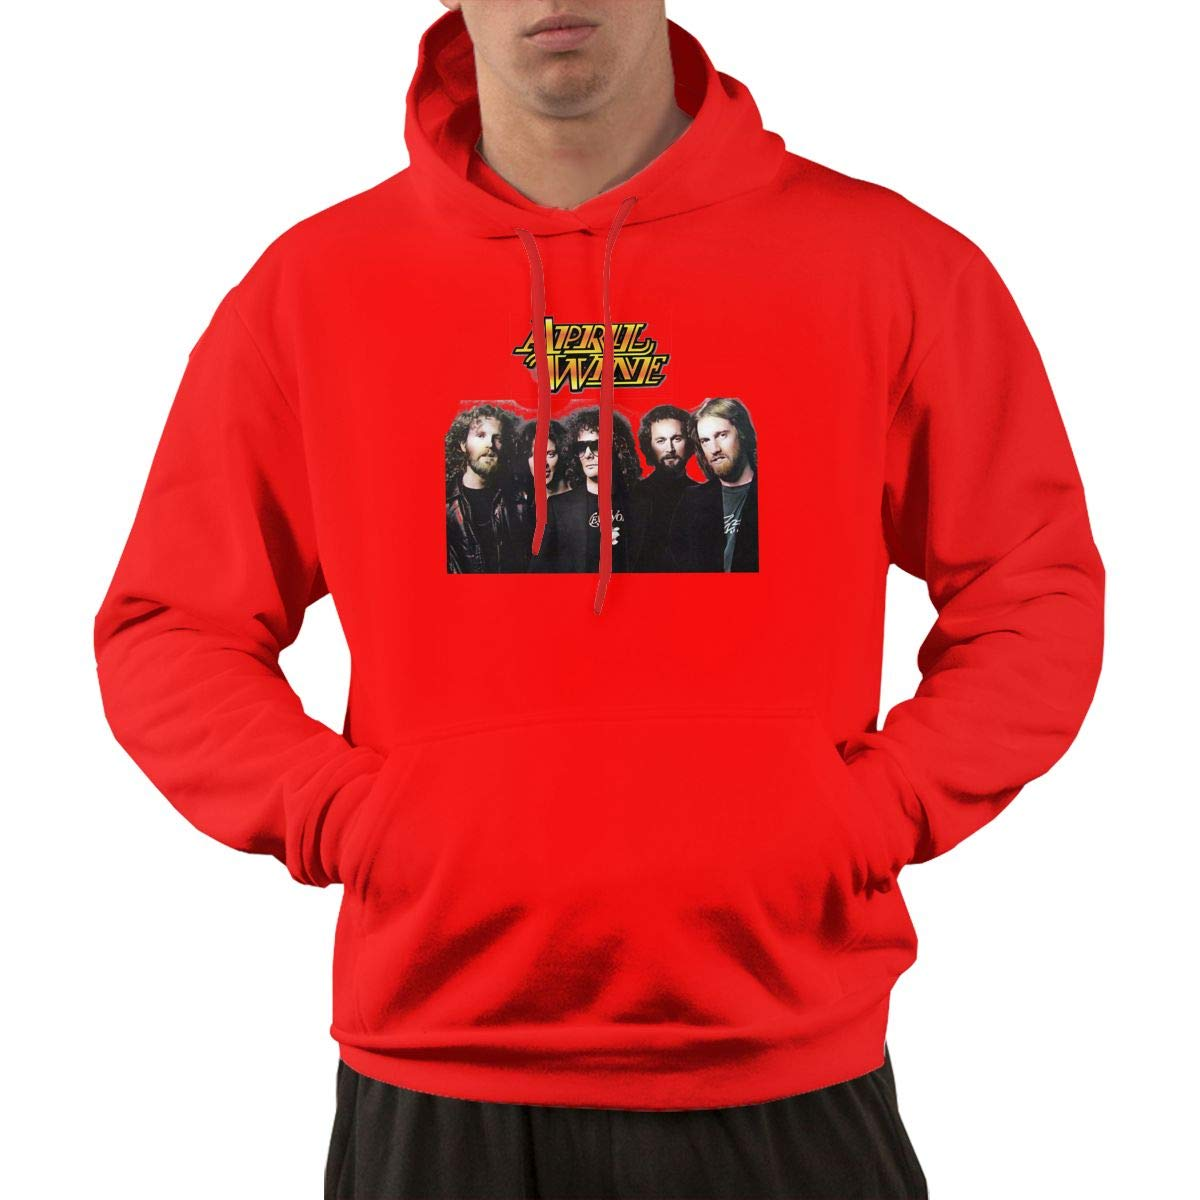 S Pullover Retro Red Print April Wine Music Cool Hooded Shirts With Pocket L